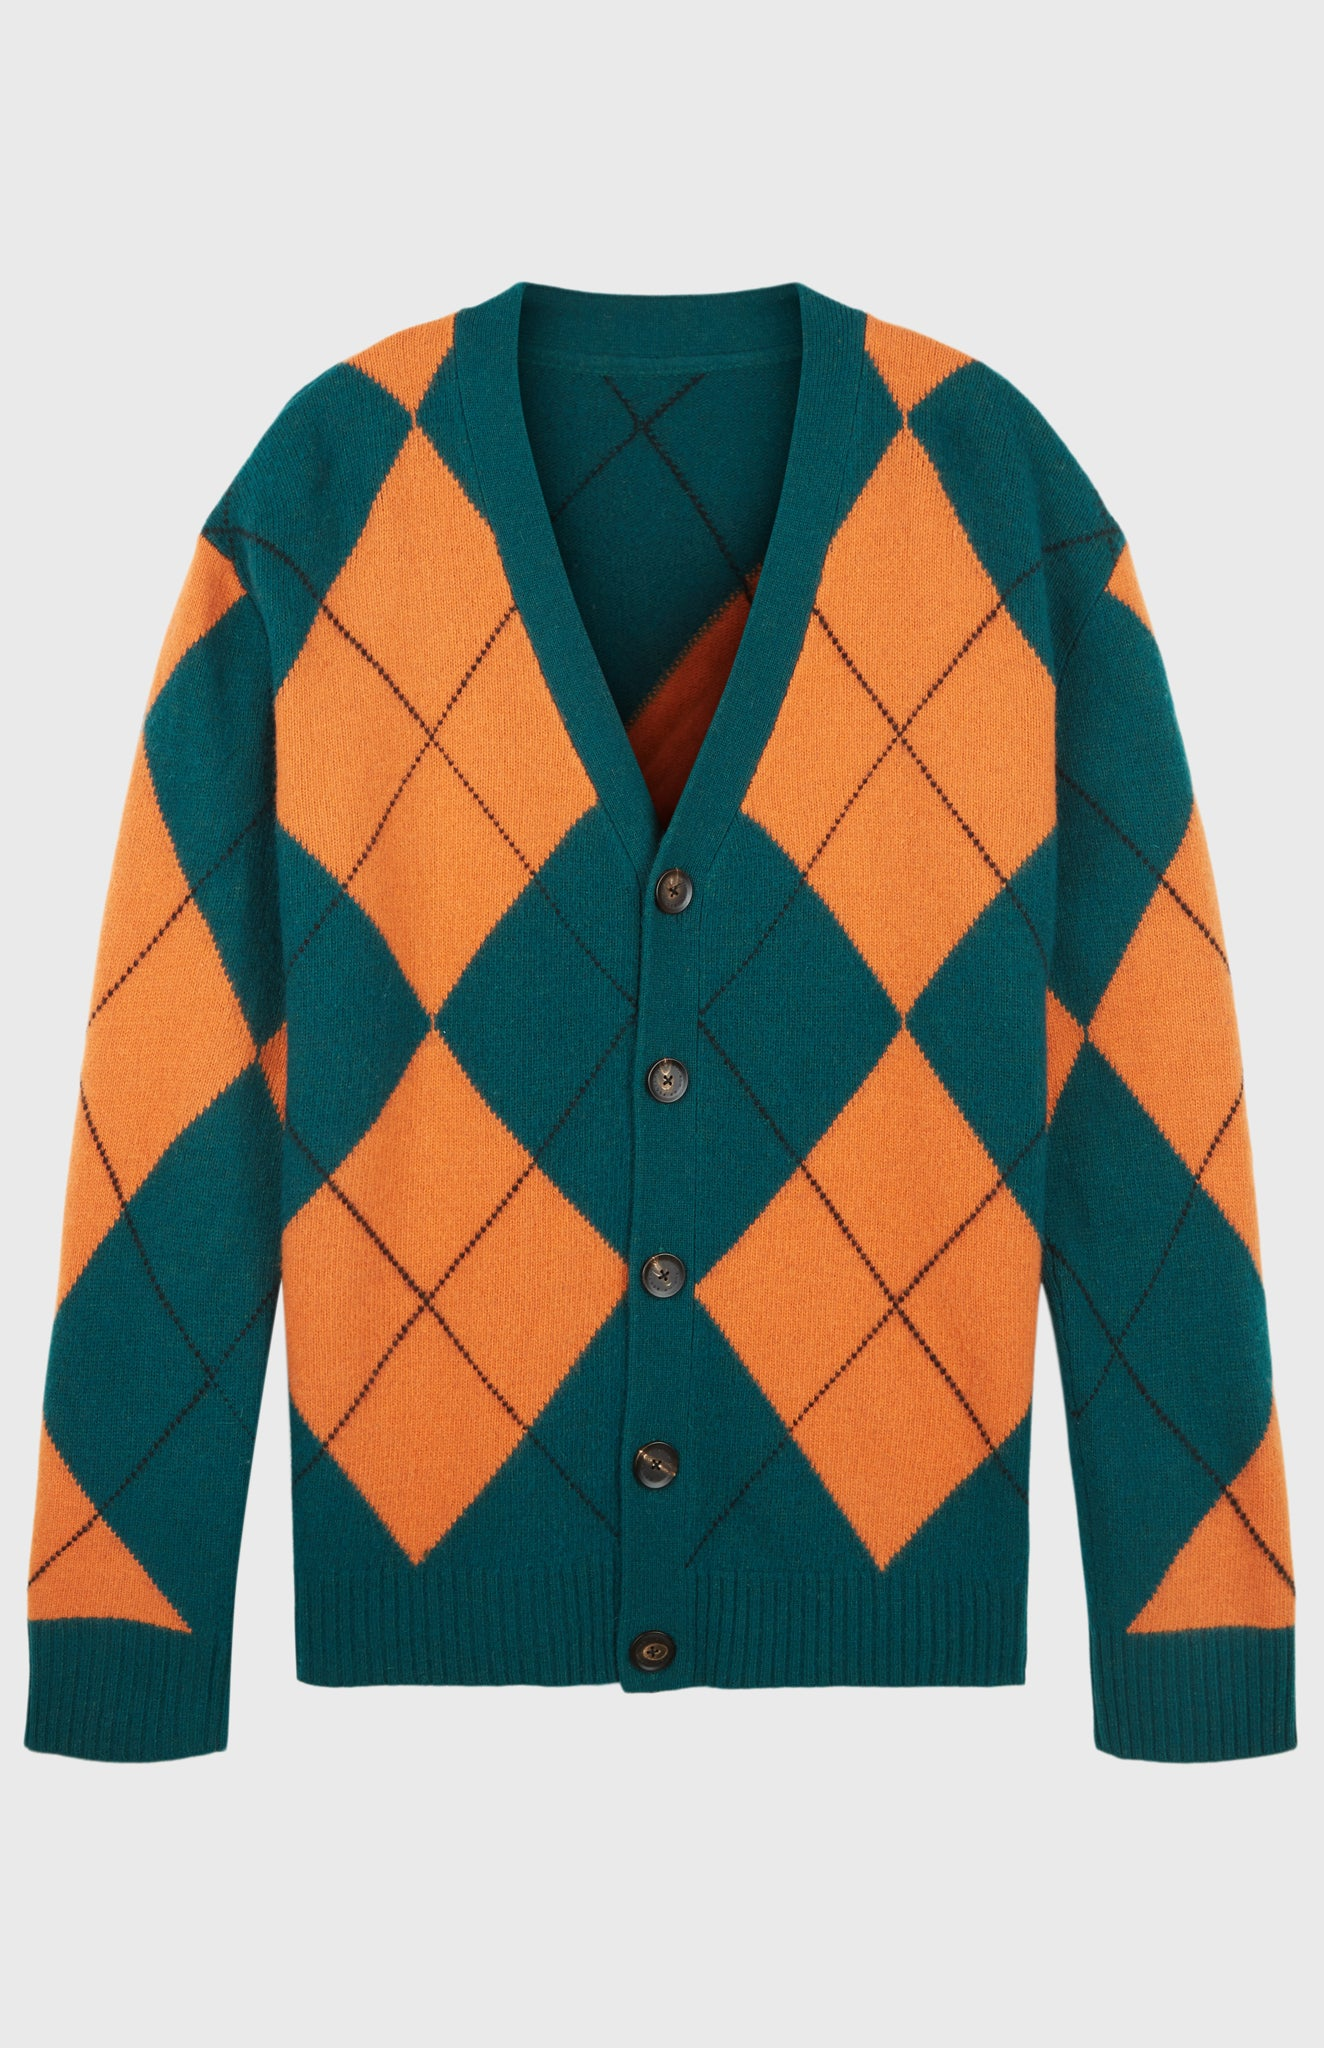 Pringle Reissued Unisex Two Tone Argyle Cardigan in orange and green